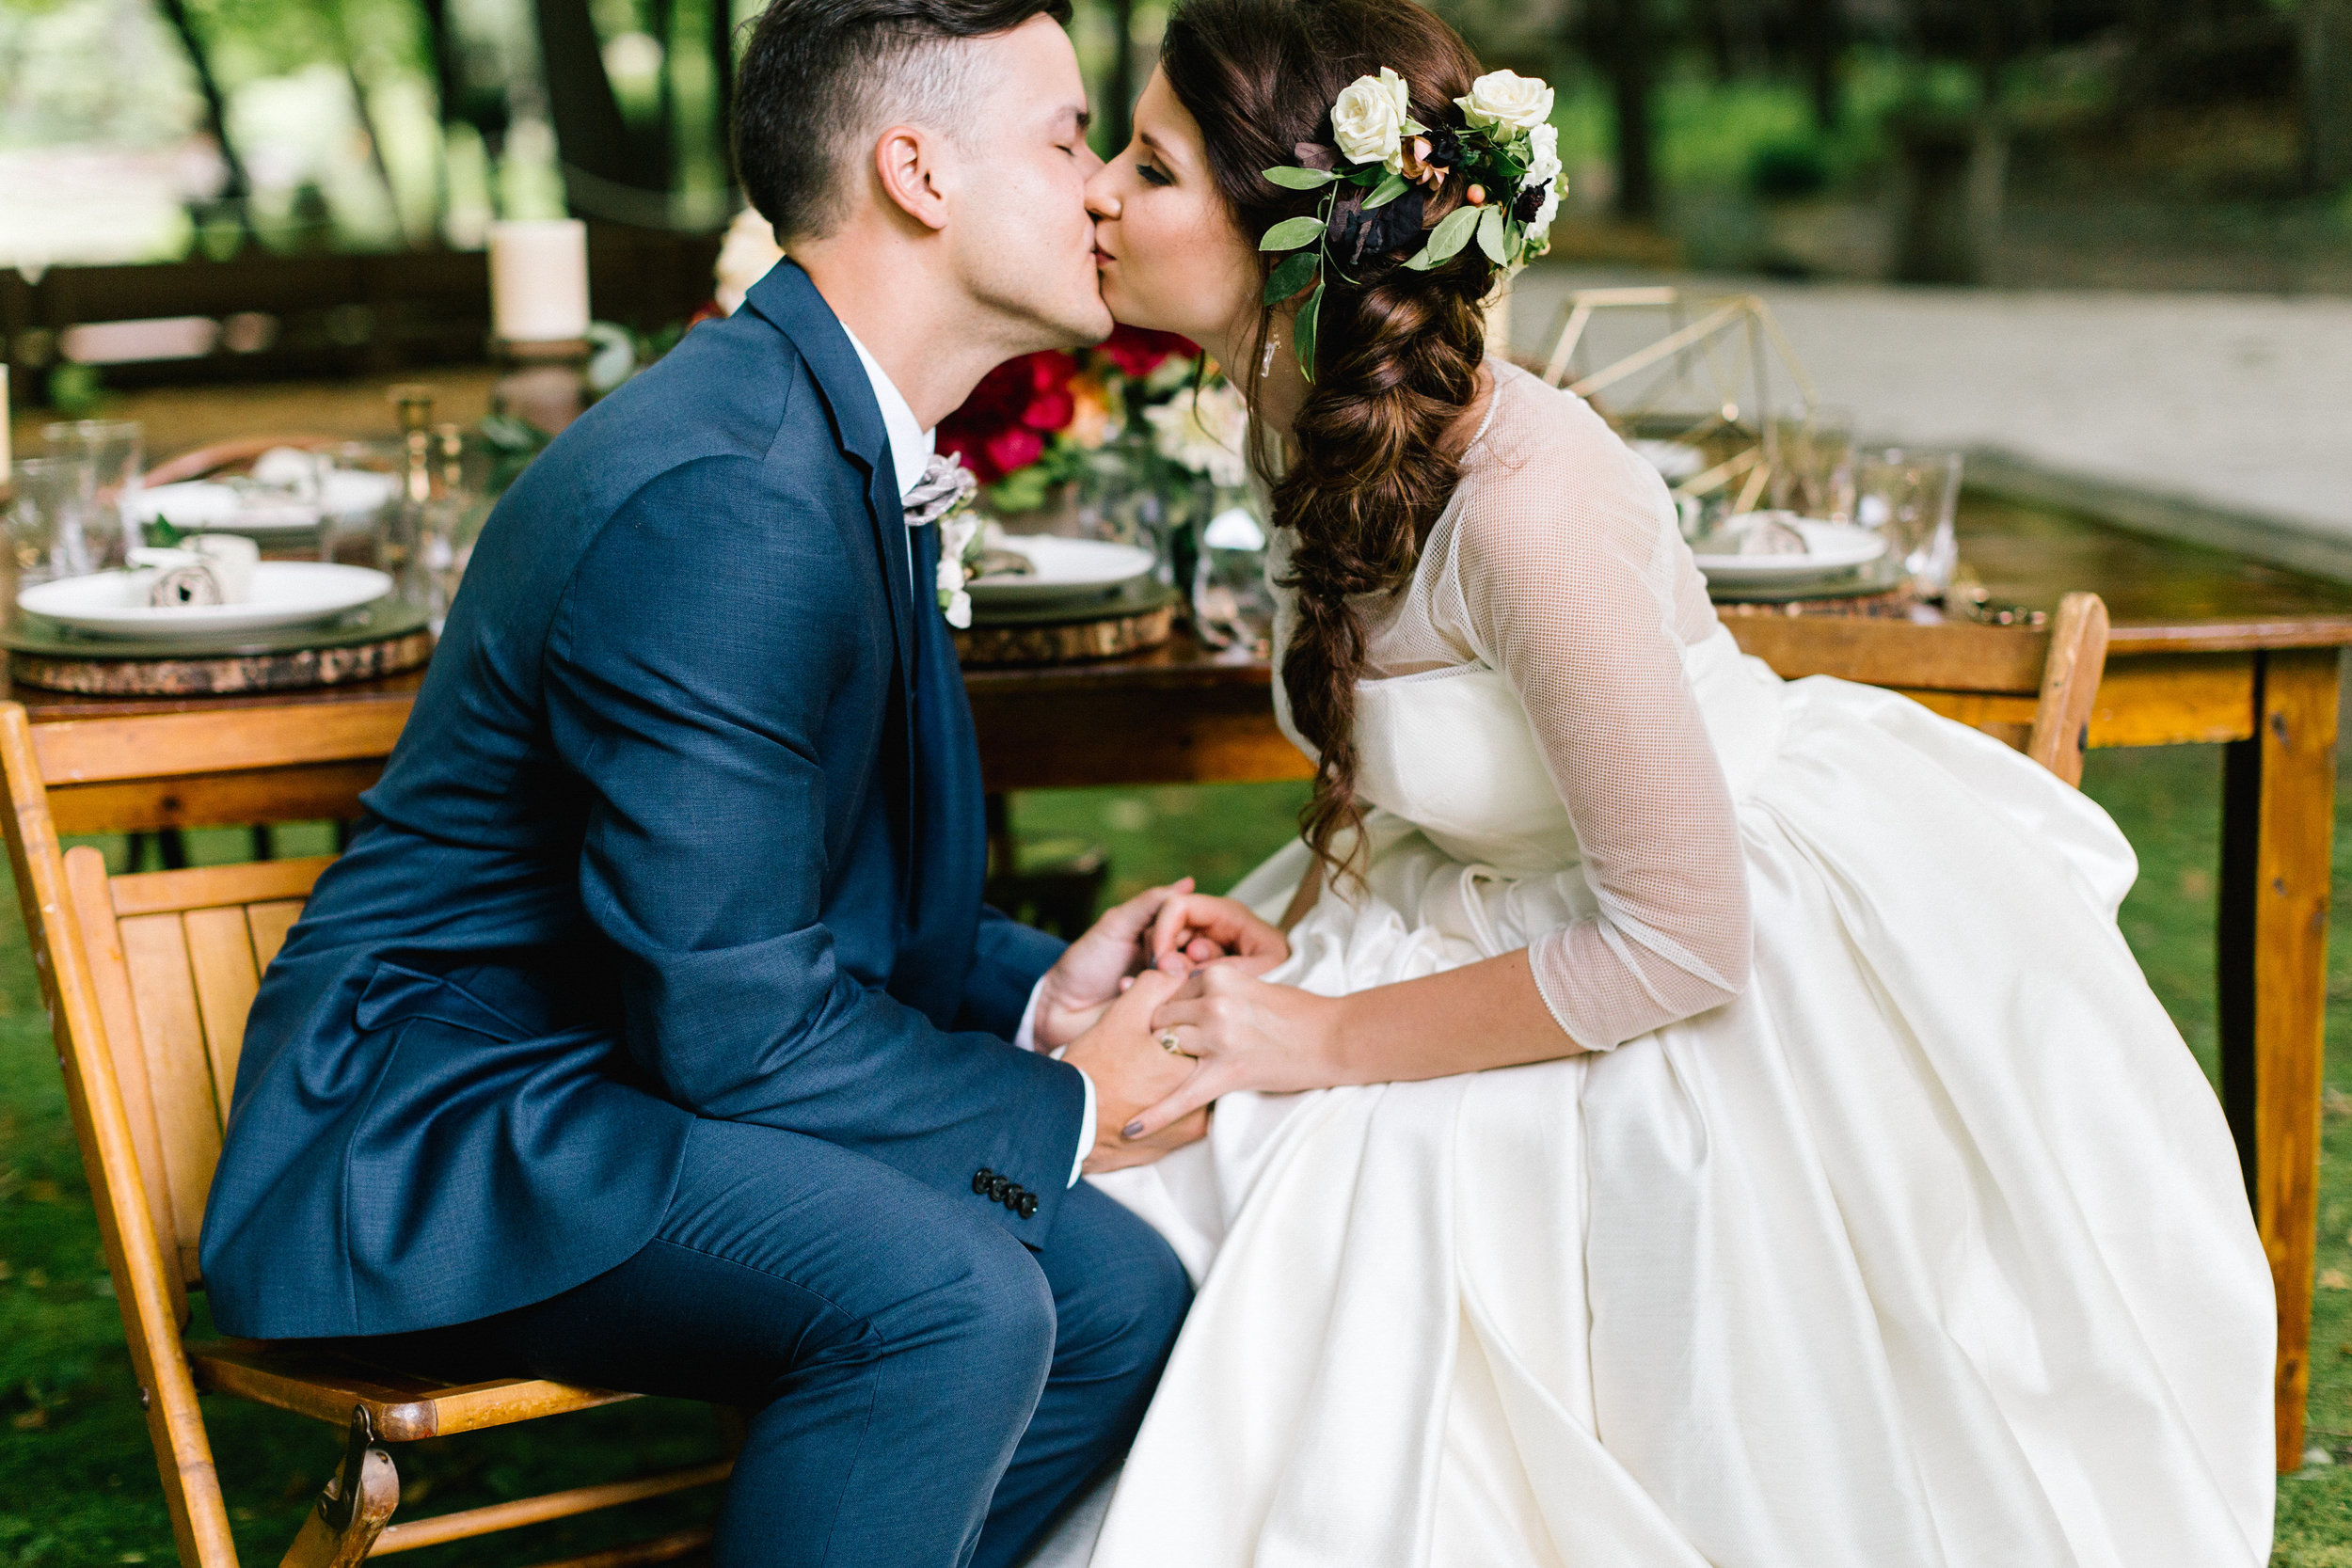 Allison_Hopperstad_Photography_Acowsay_Wedding_Kissing.JPG